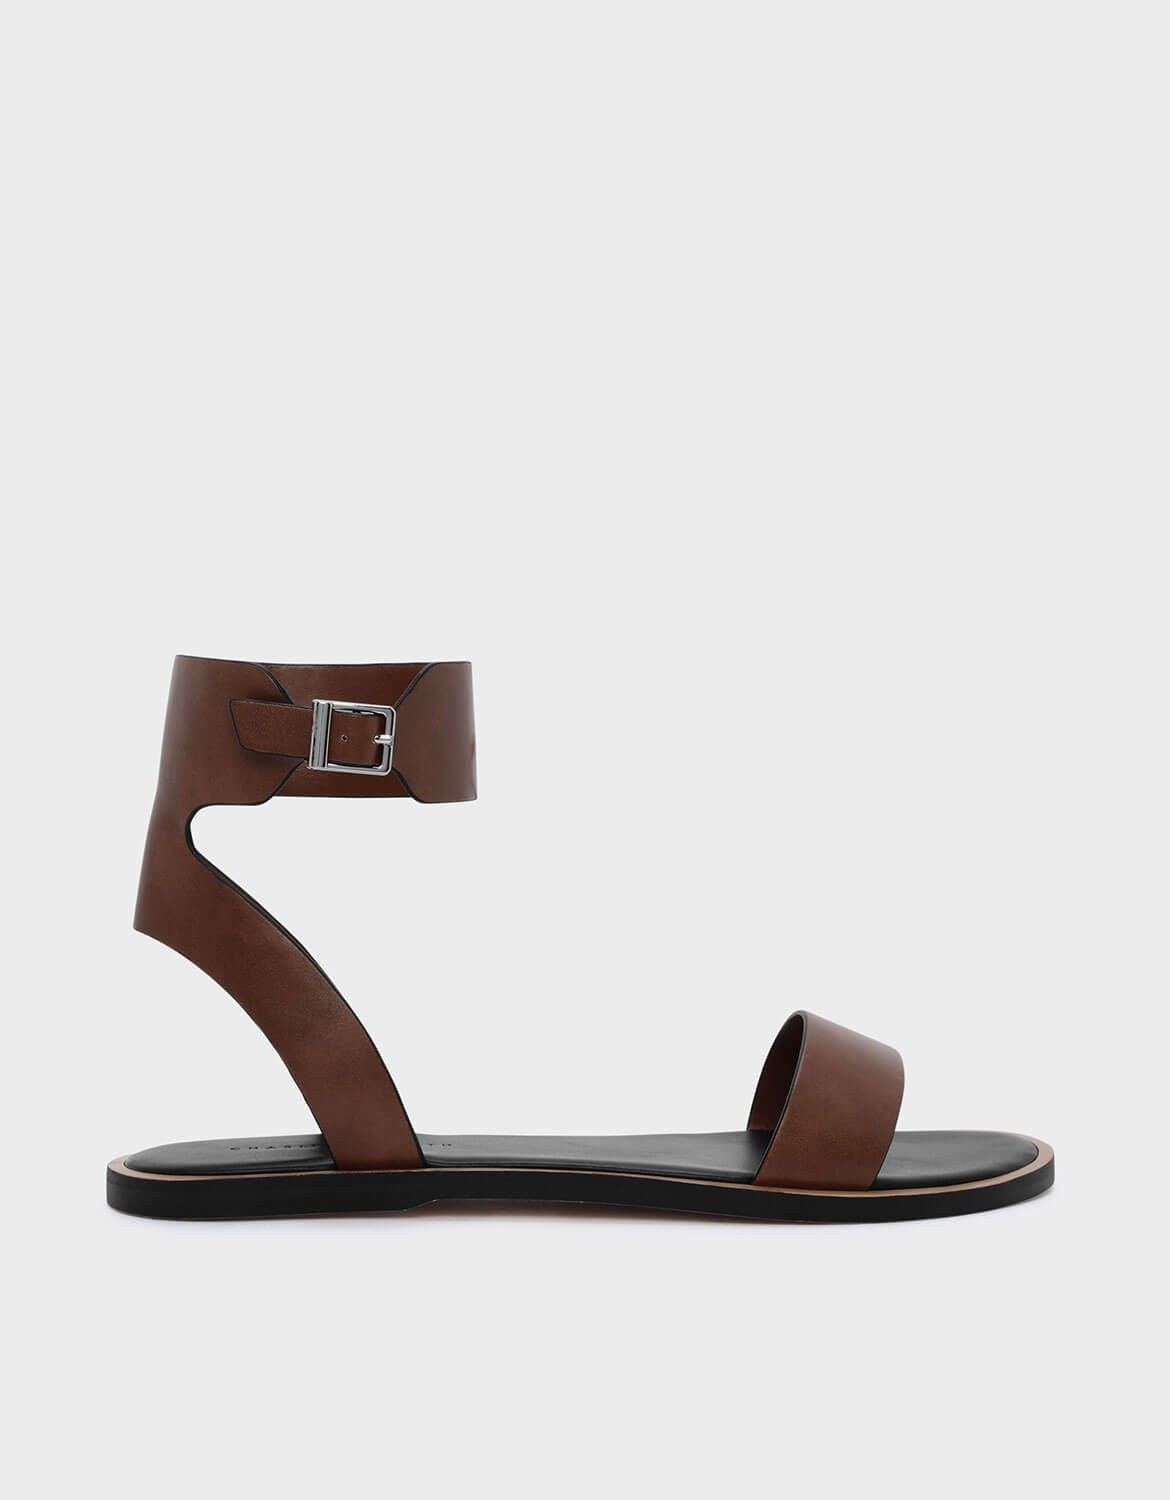 Charles Keith Shoes Brown Sandals Featuring A Thick Ankle